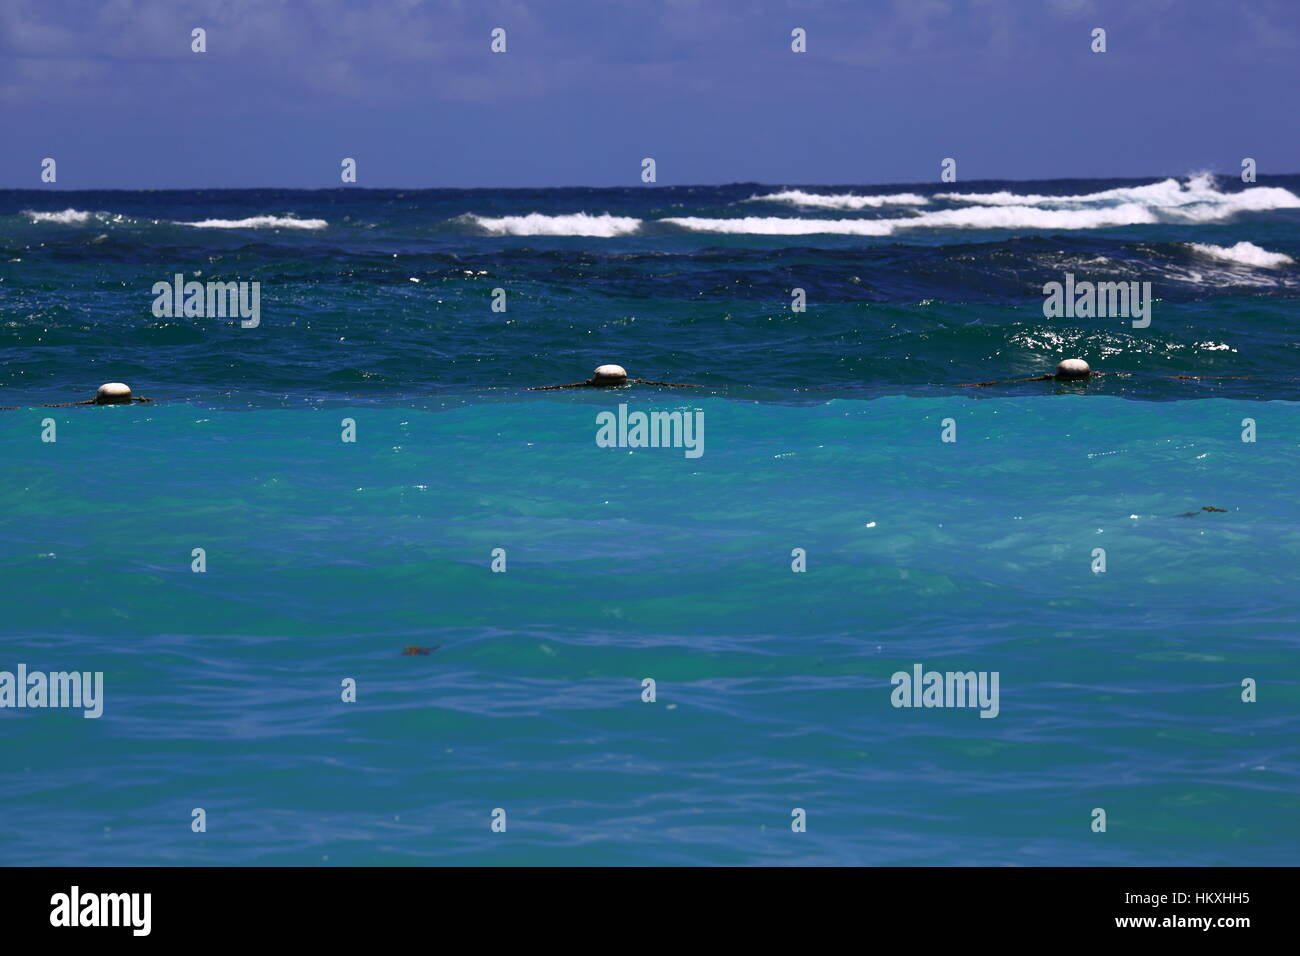 Indian Ocean with waves coming into shore, riptides. - Stock Image